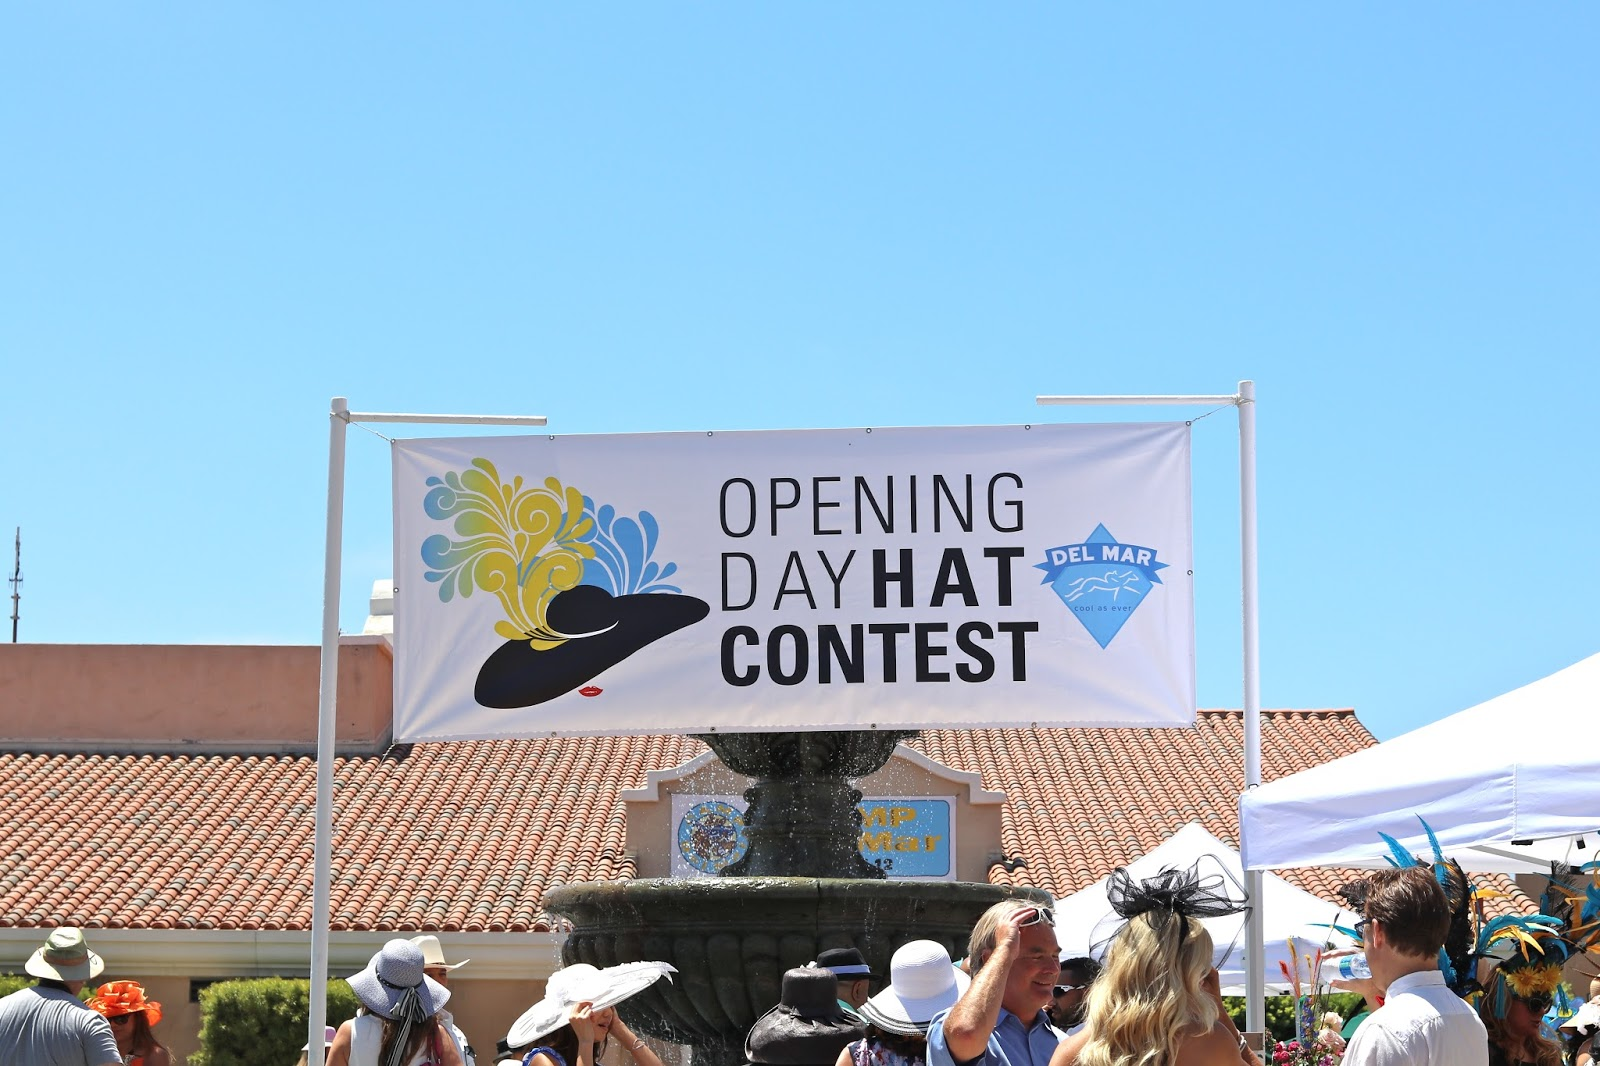 Opening Day at the Del Mar Racetrack 2016, Hat Contest, Opening Day at the Del Mar Racetrack 2016 Hat Contest